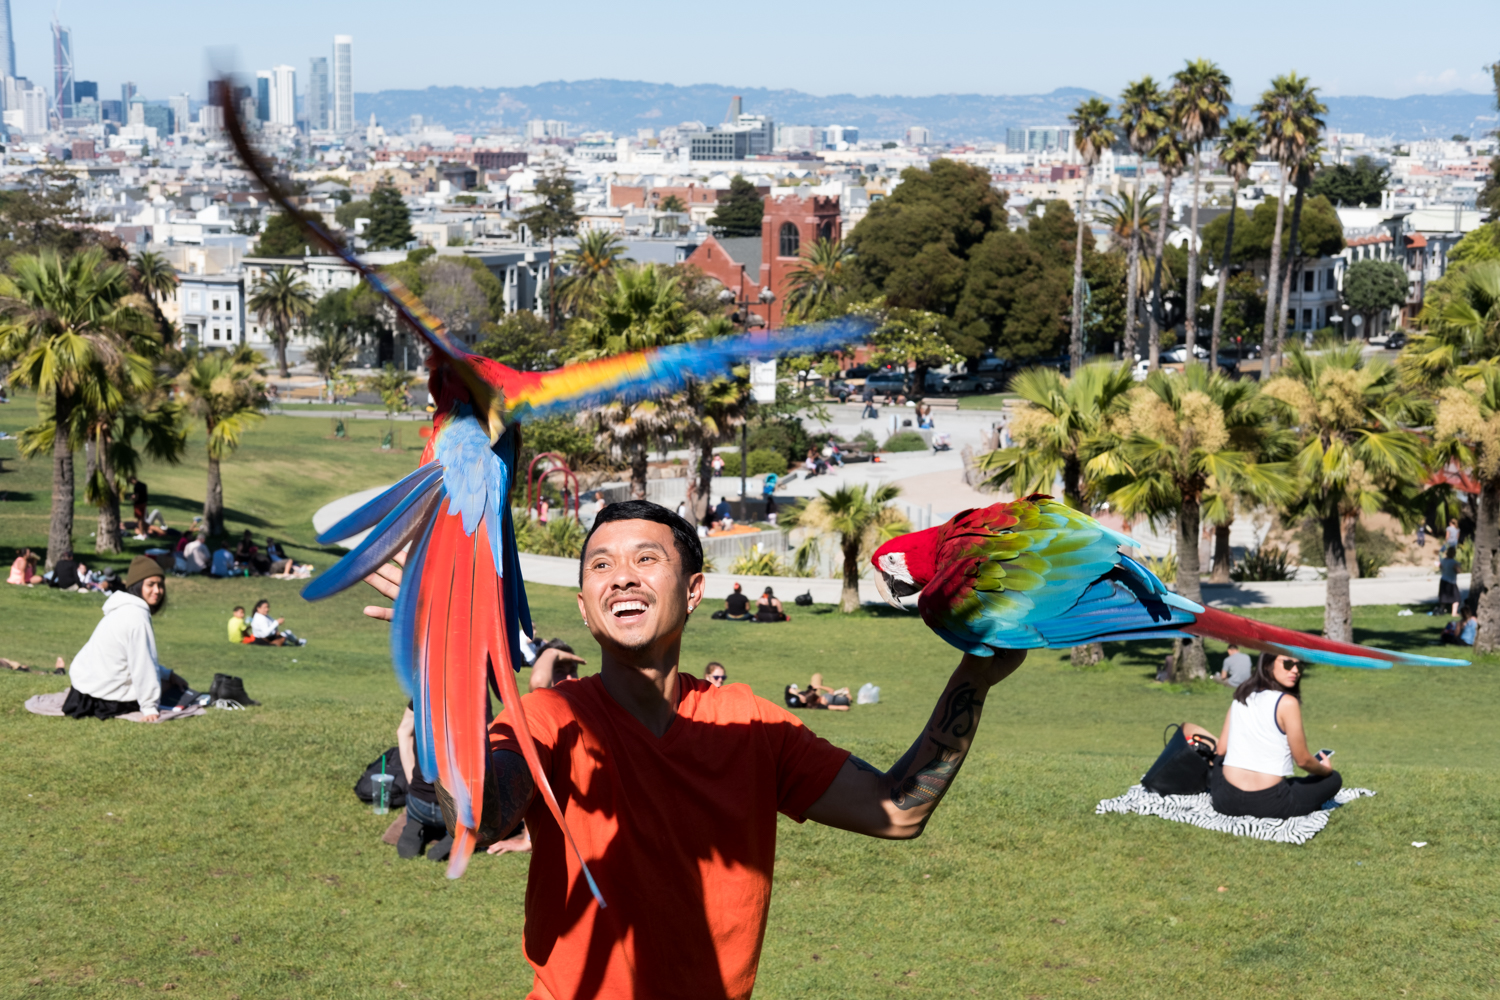 Chan the Bird Man flies his scarlet macaws in San Francisco's Mission Dolores Park.